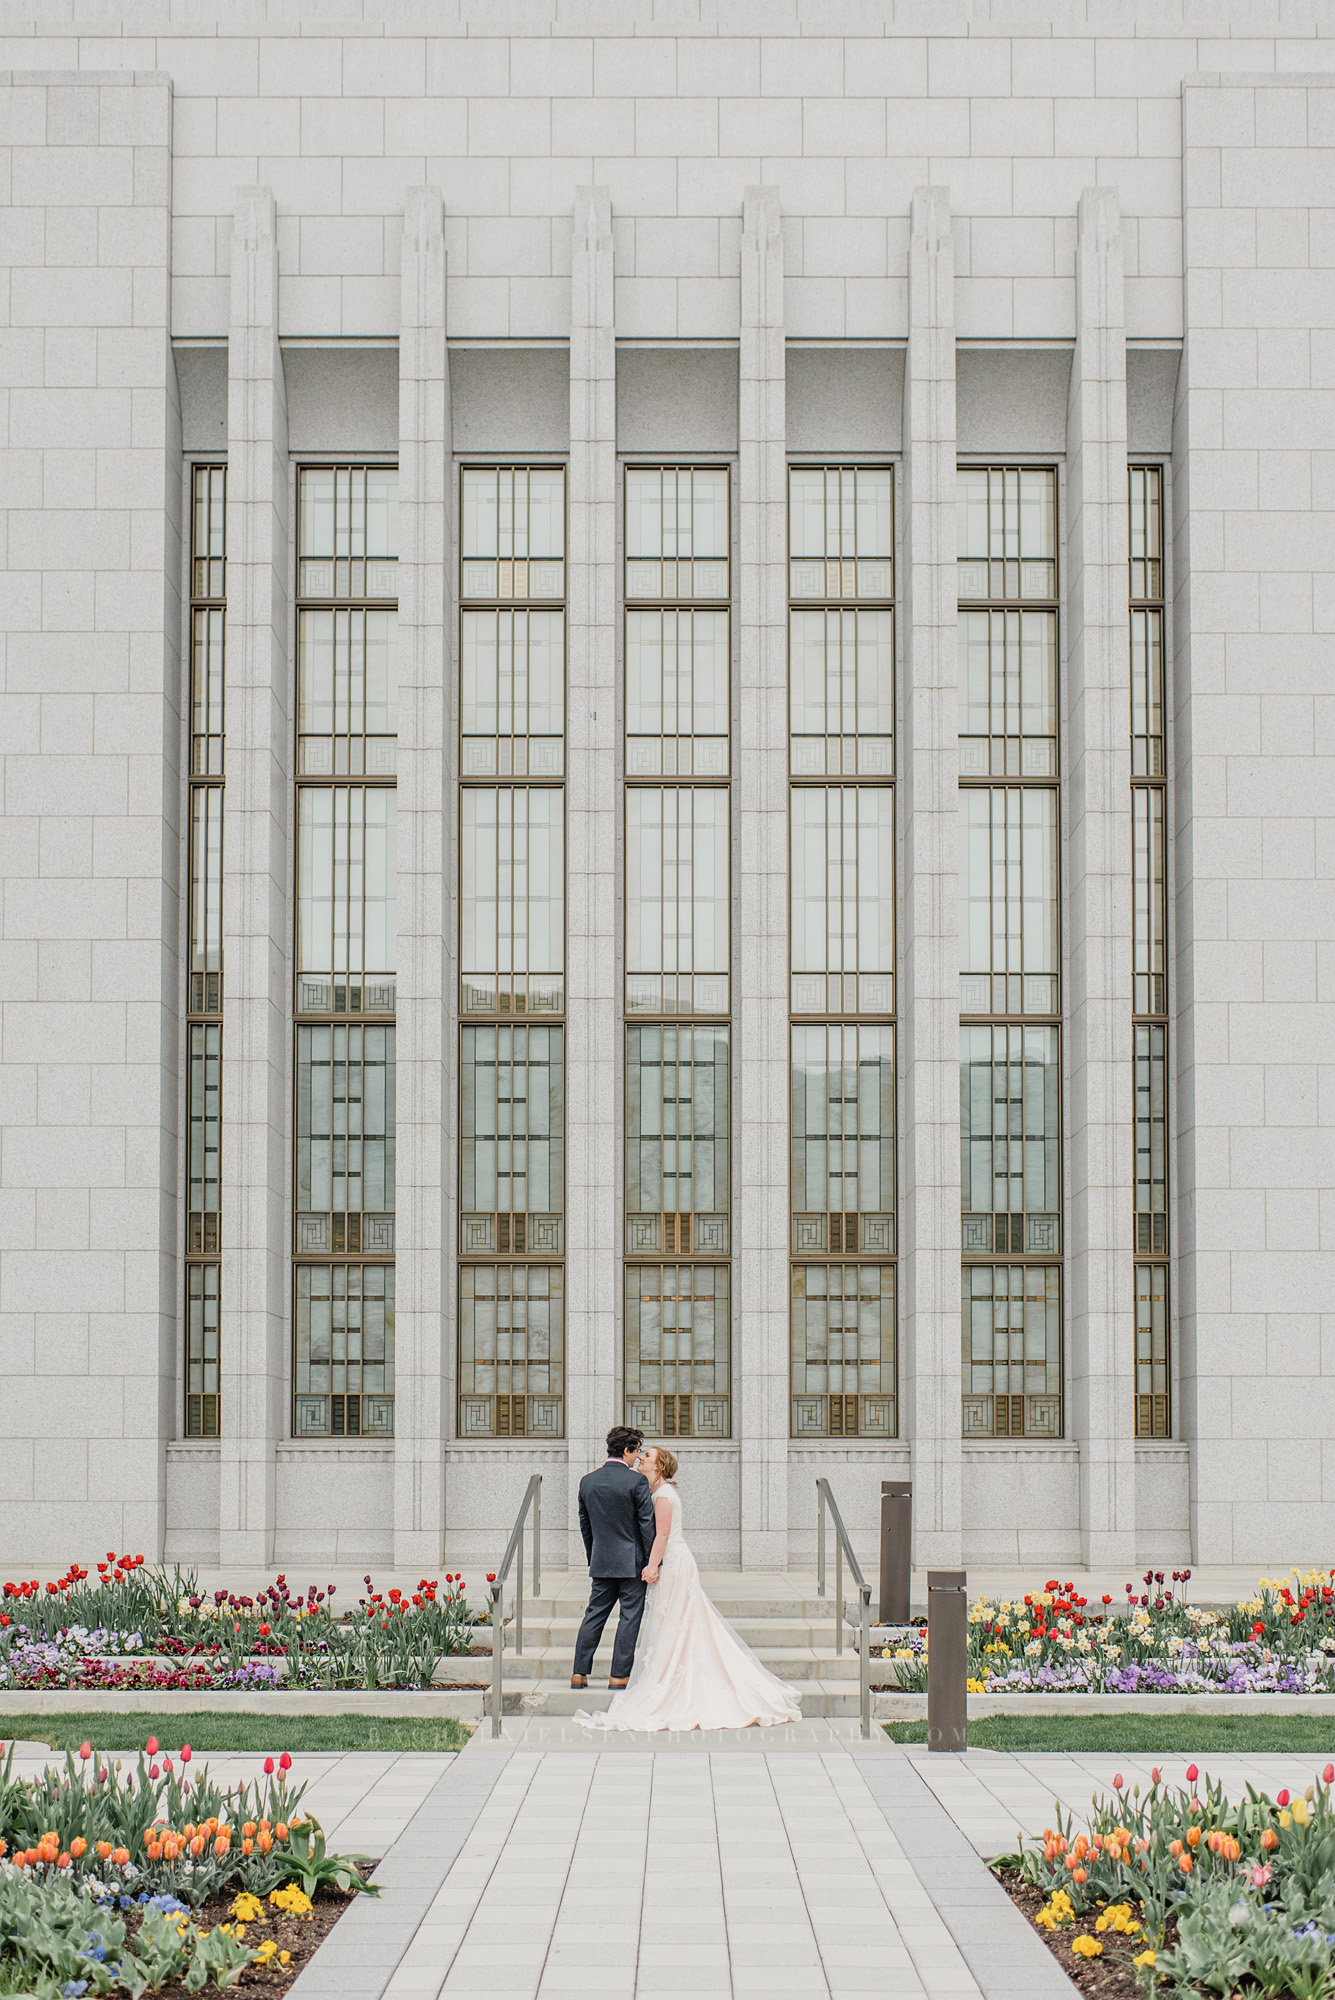 Draper Utah LDS temple wedding